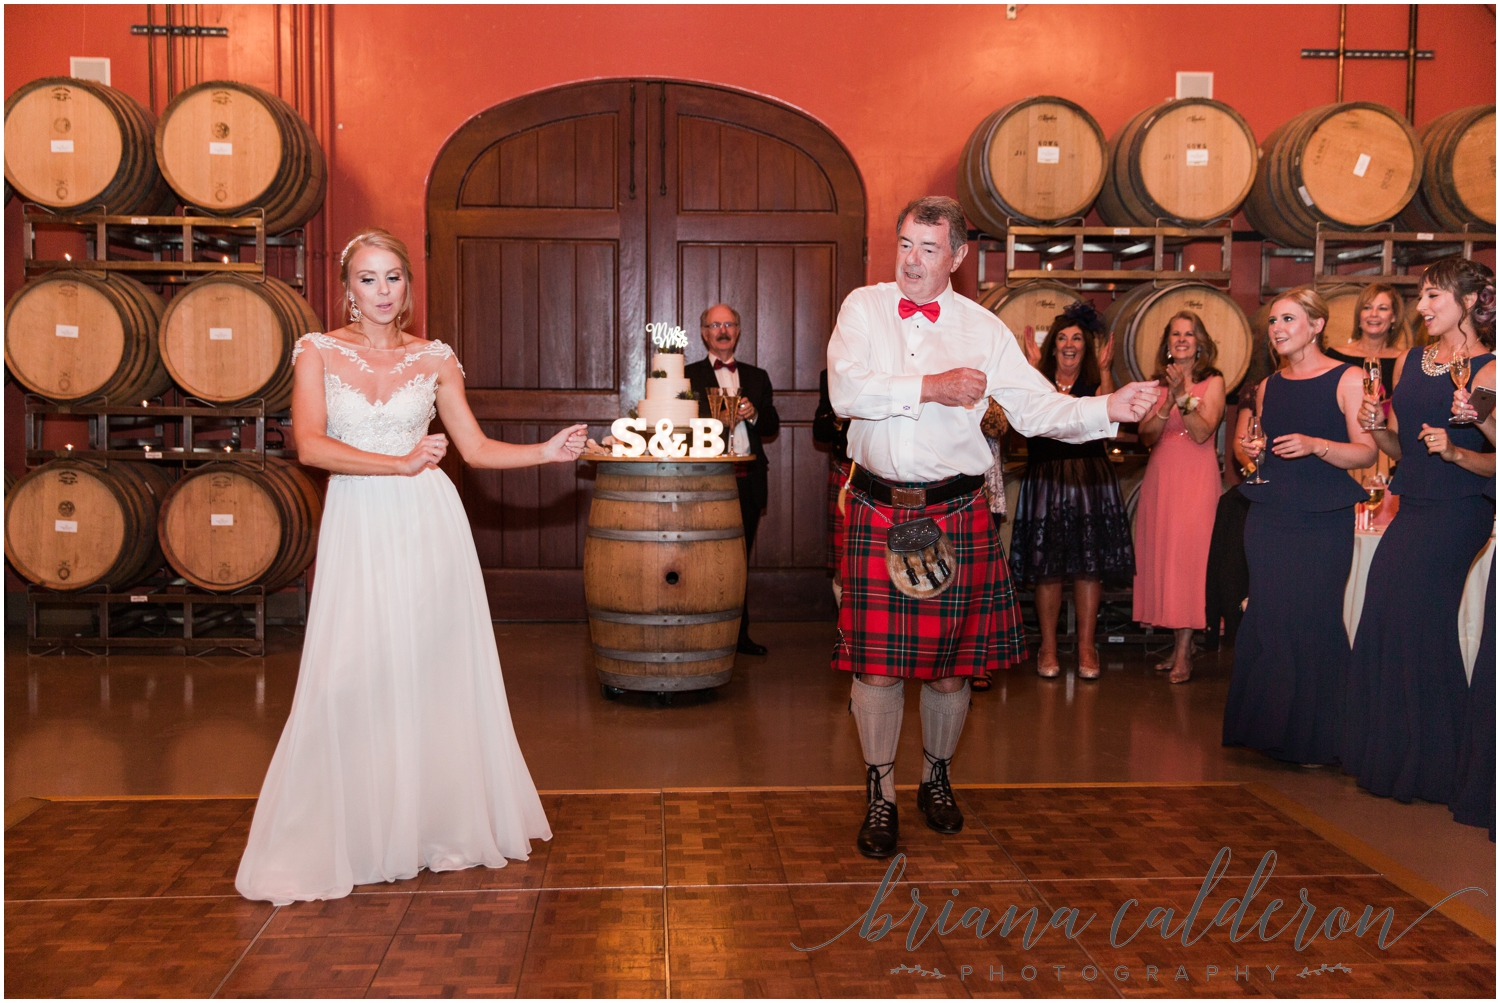 Regale Winery Wedding photos by Briana Calderon Photography_0718.jpg